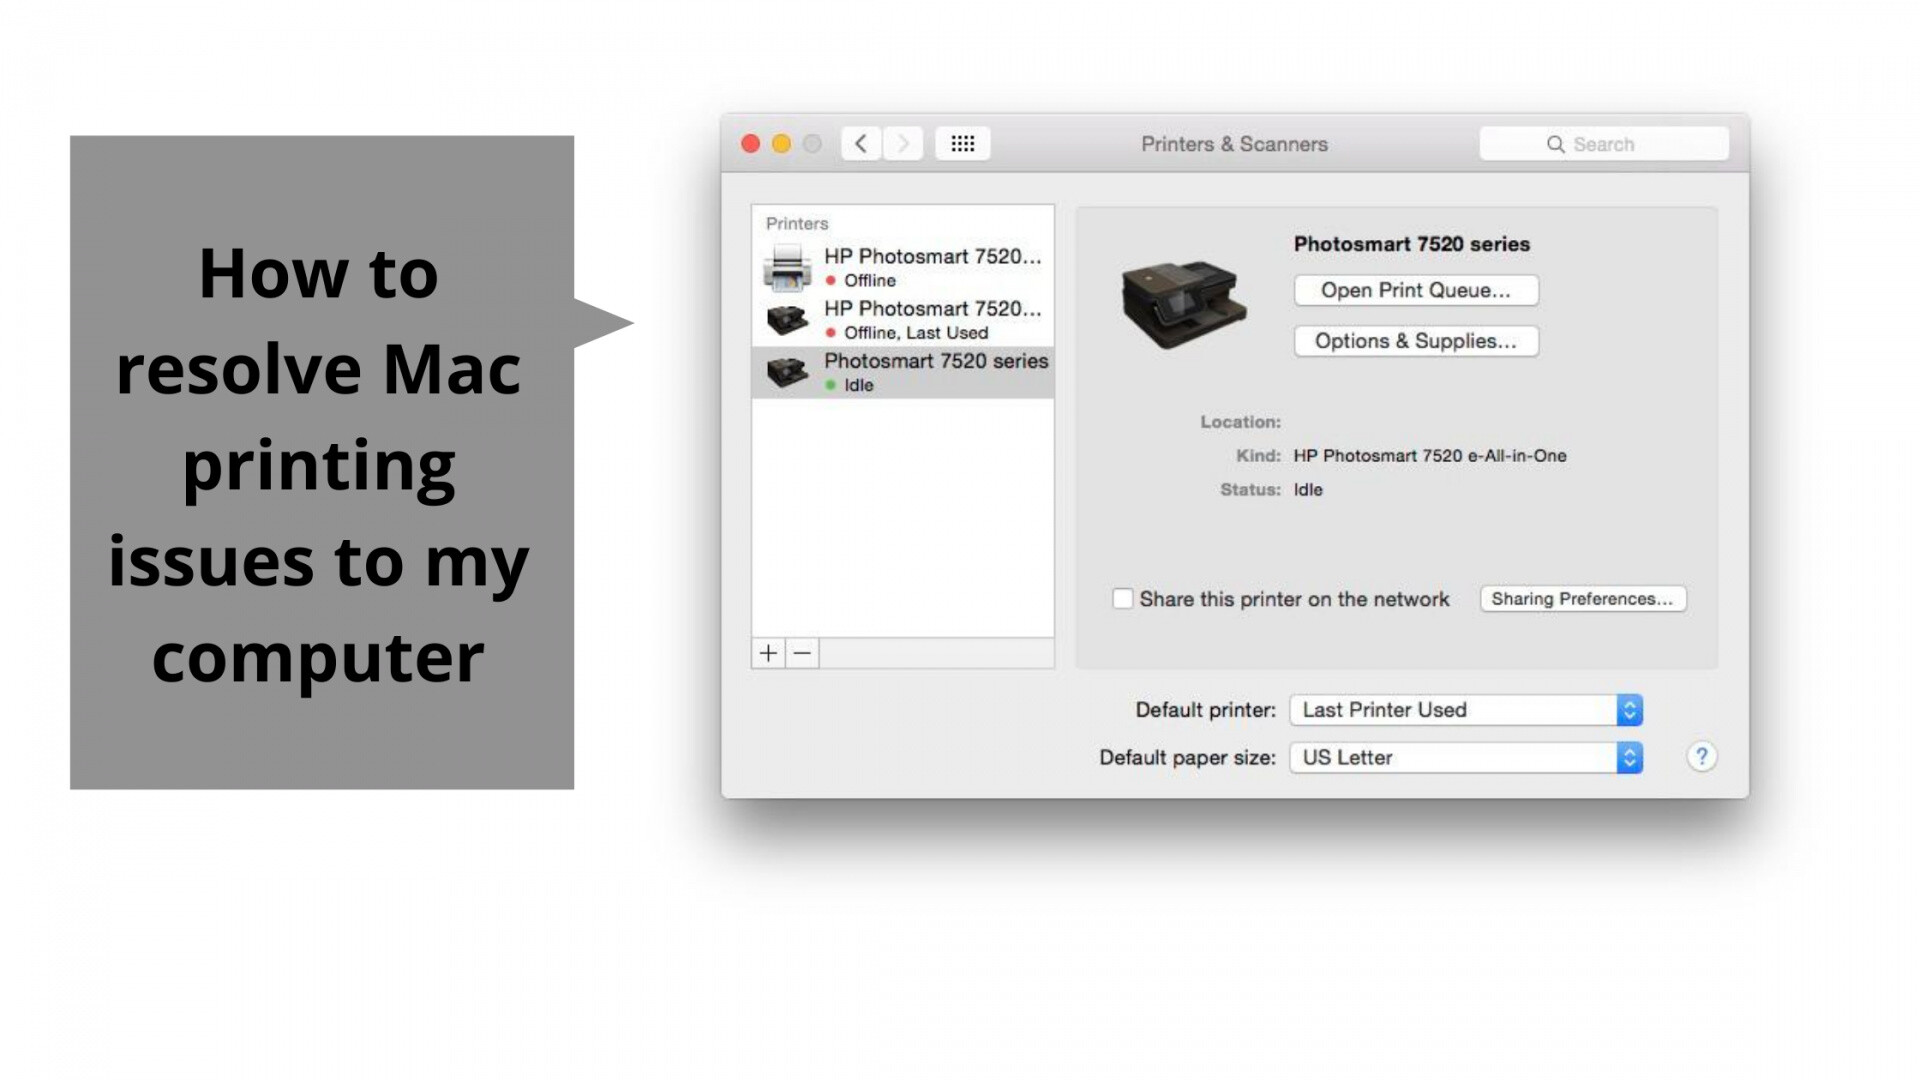 How to resolve Mac printing issues to my computer